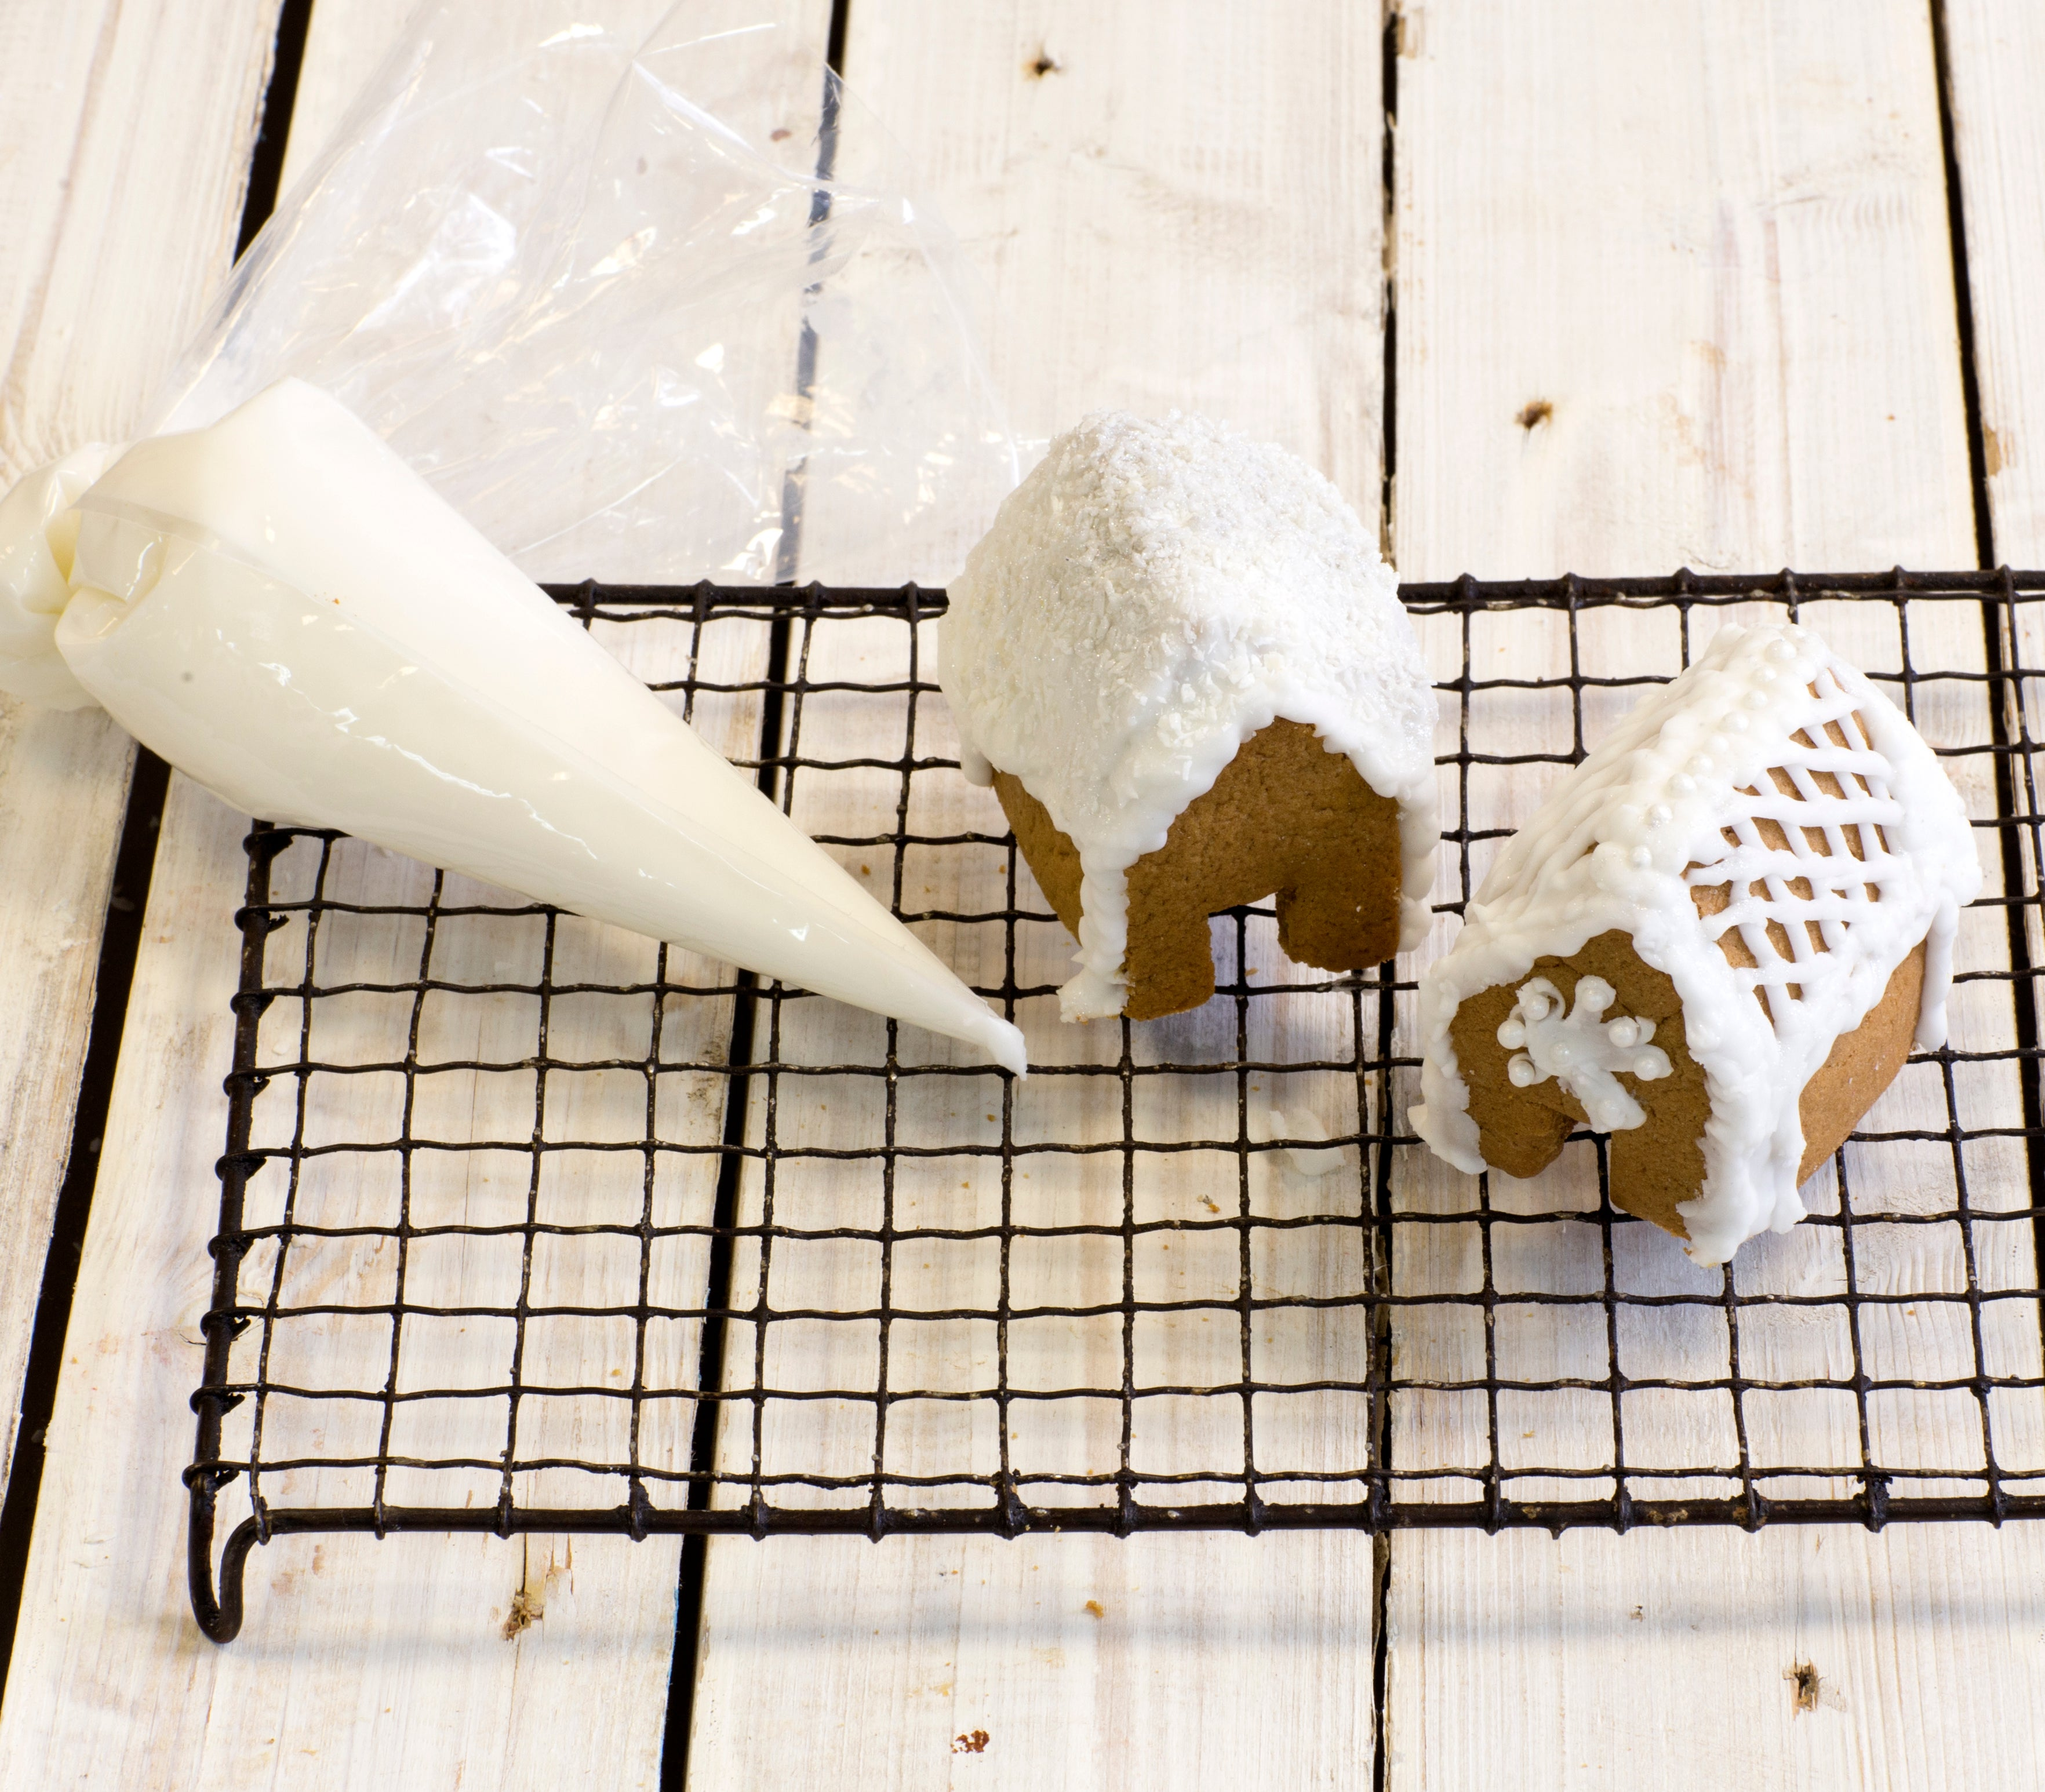 Gingerbread house construction with icing bag on cooling rack